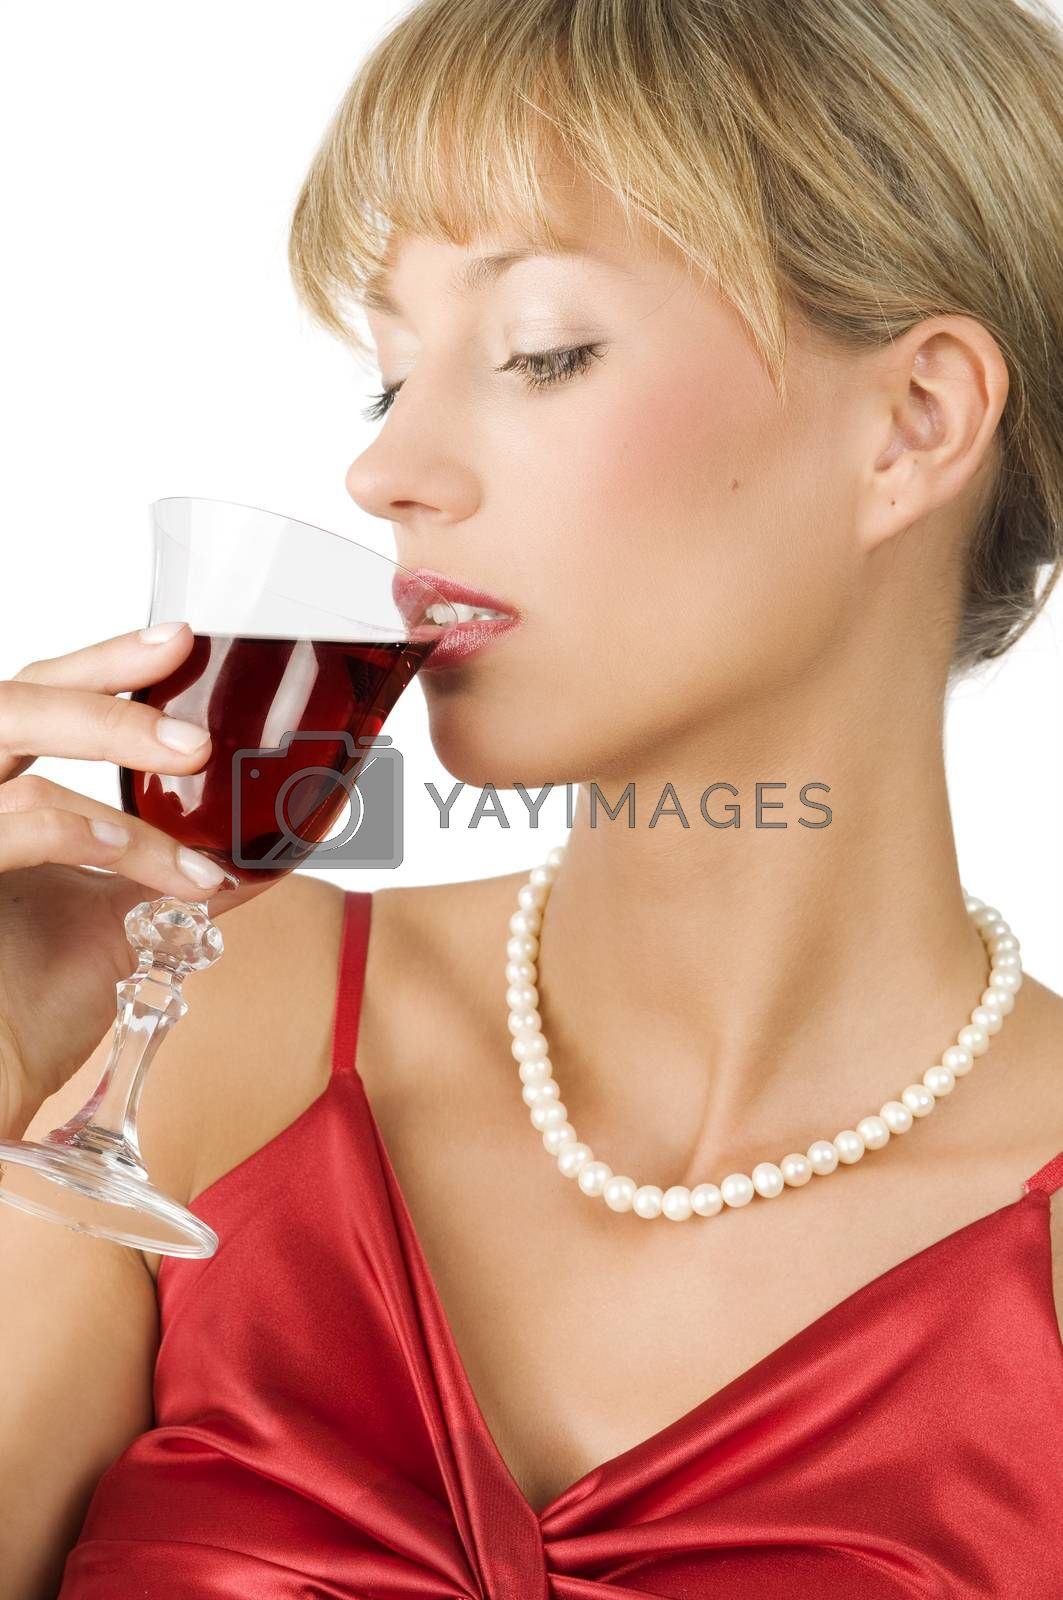 Royalty free image of drinking wine by fotoCD